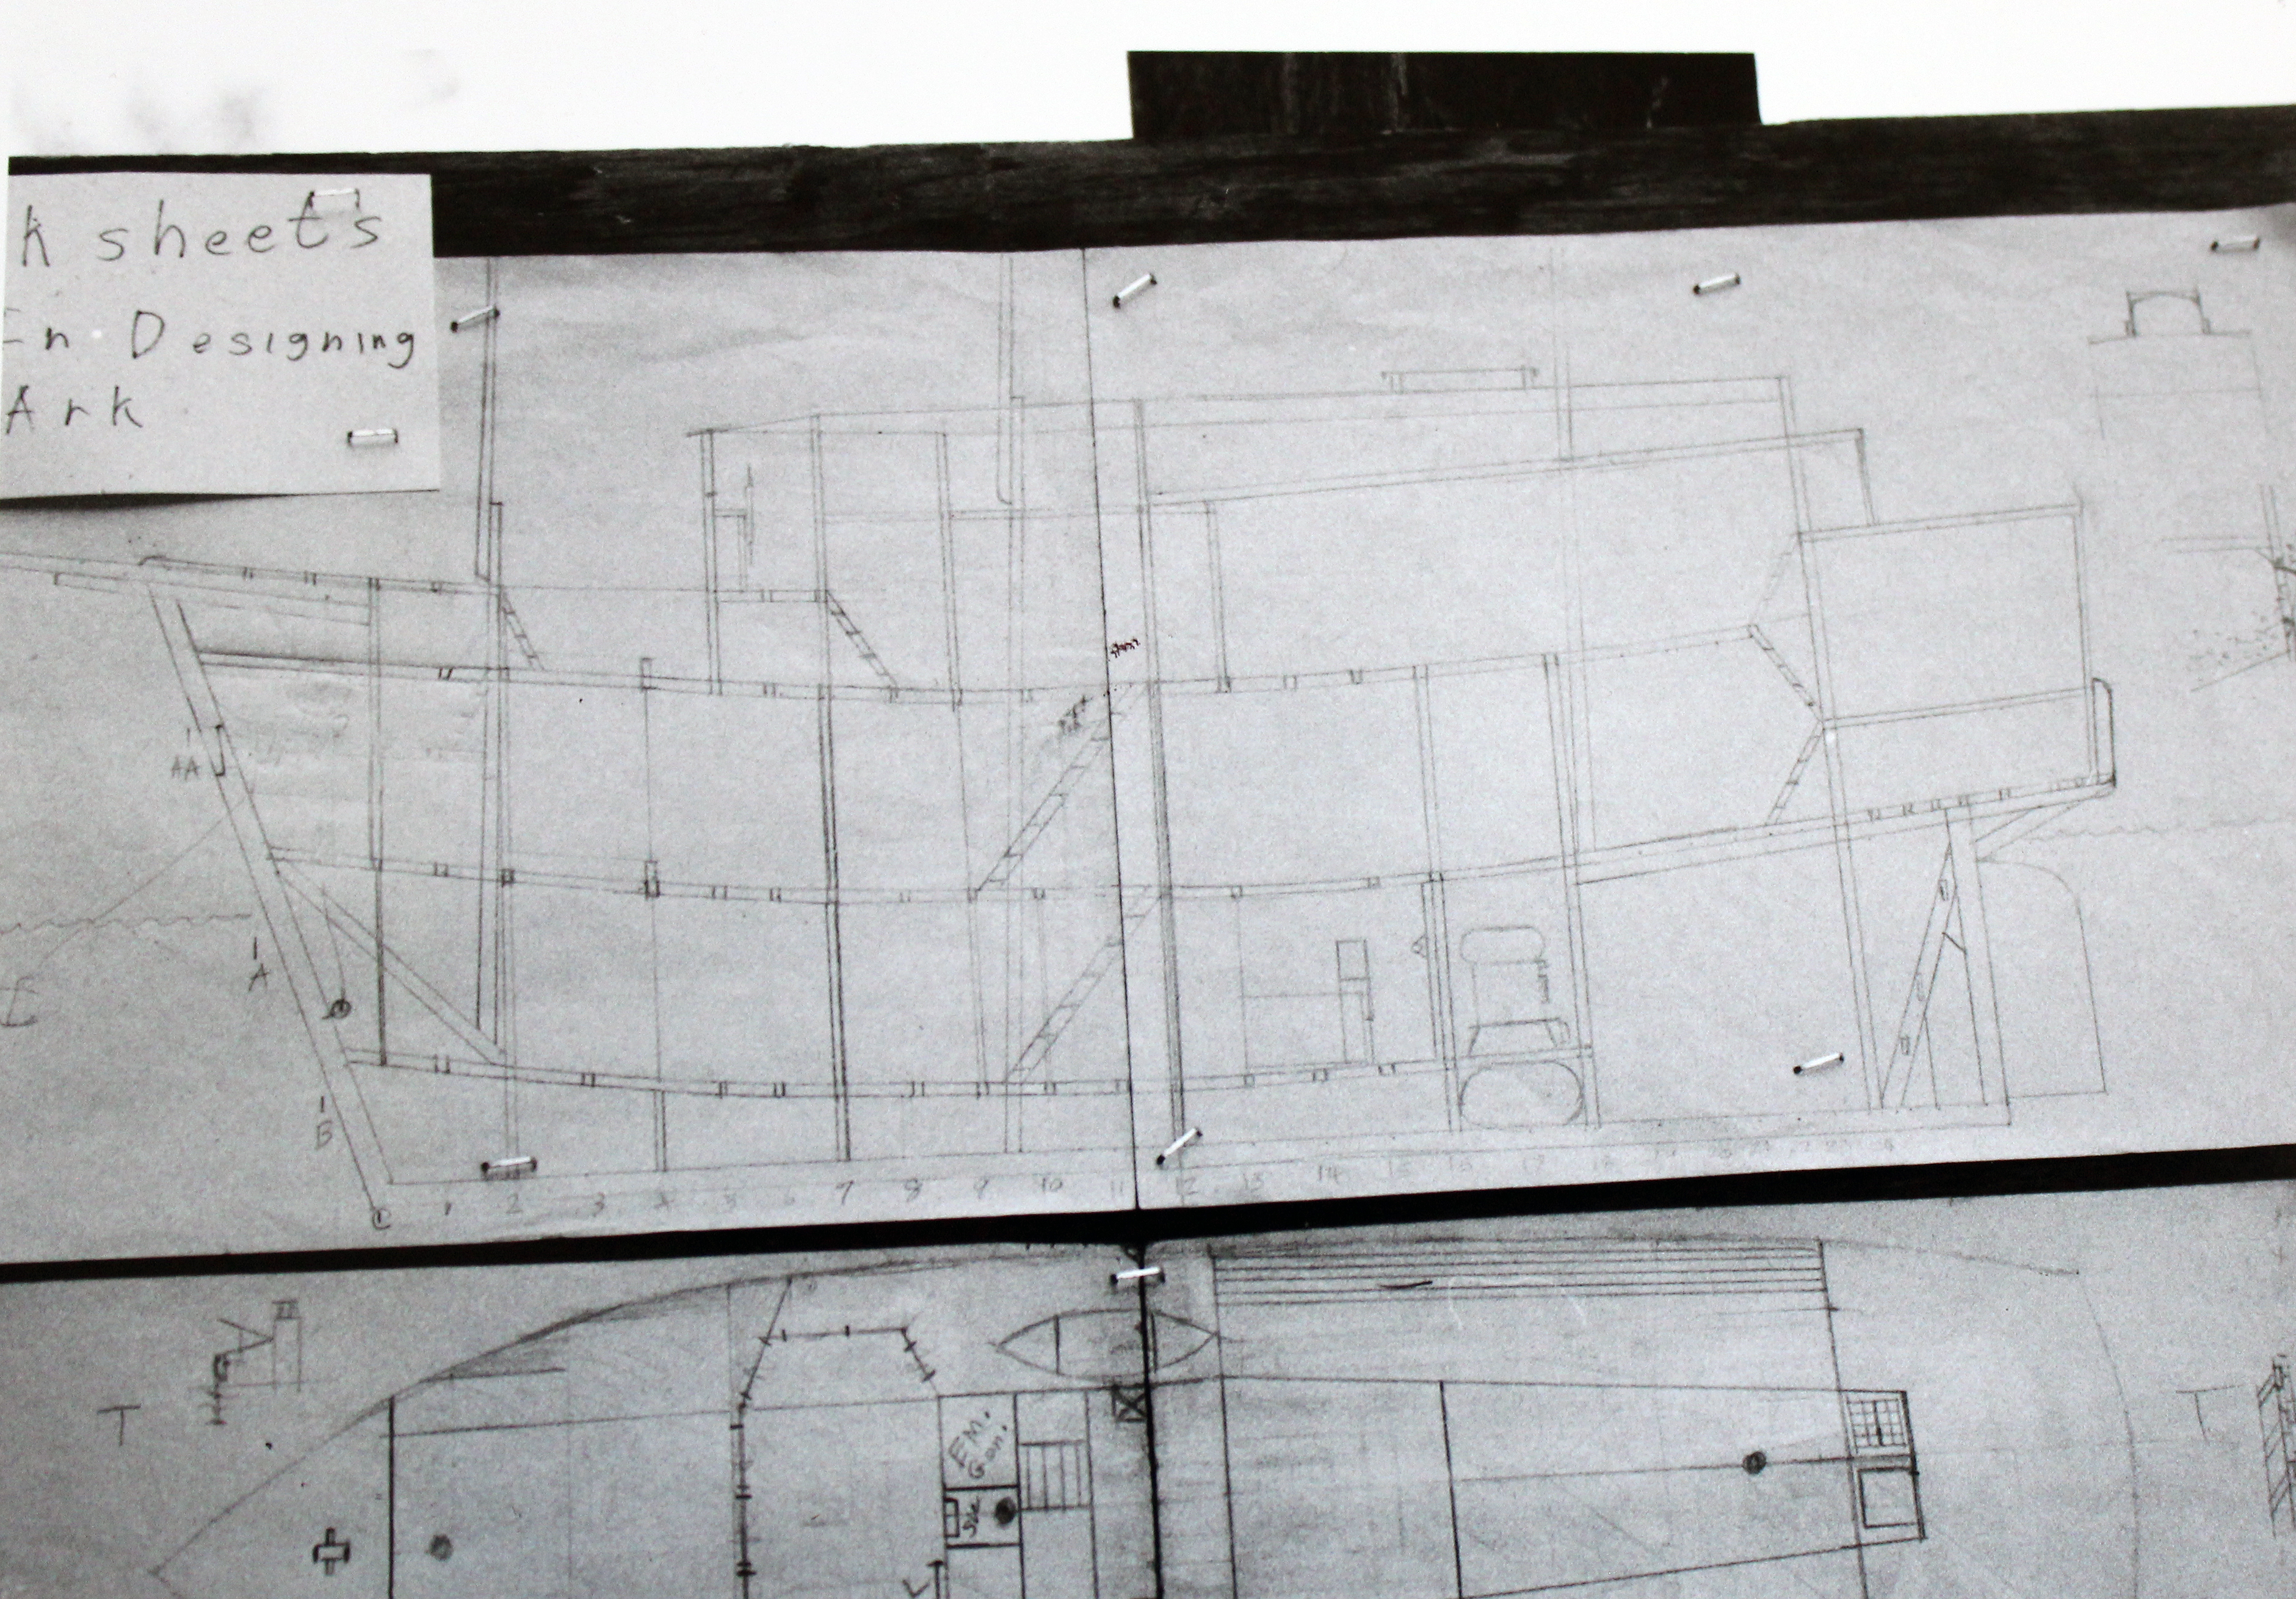 Designing the Ark courtesy of Hatch-Billops Archive